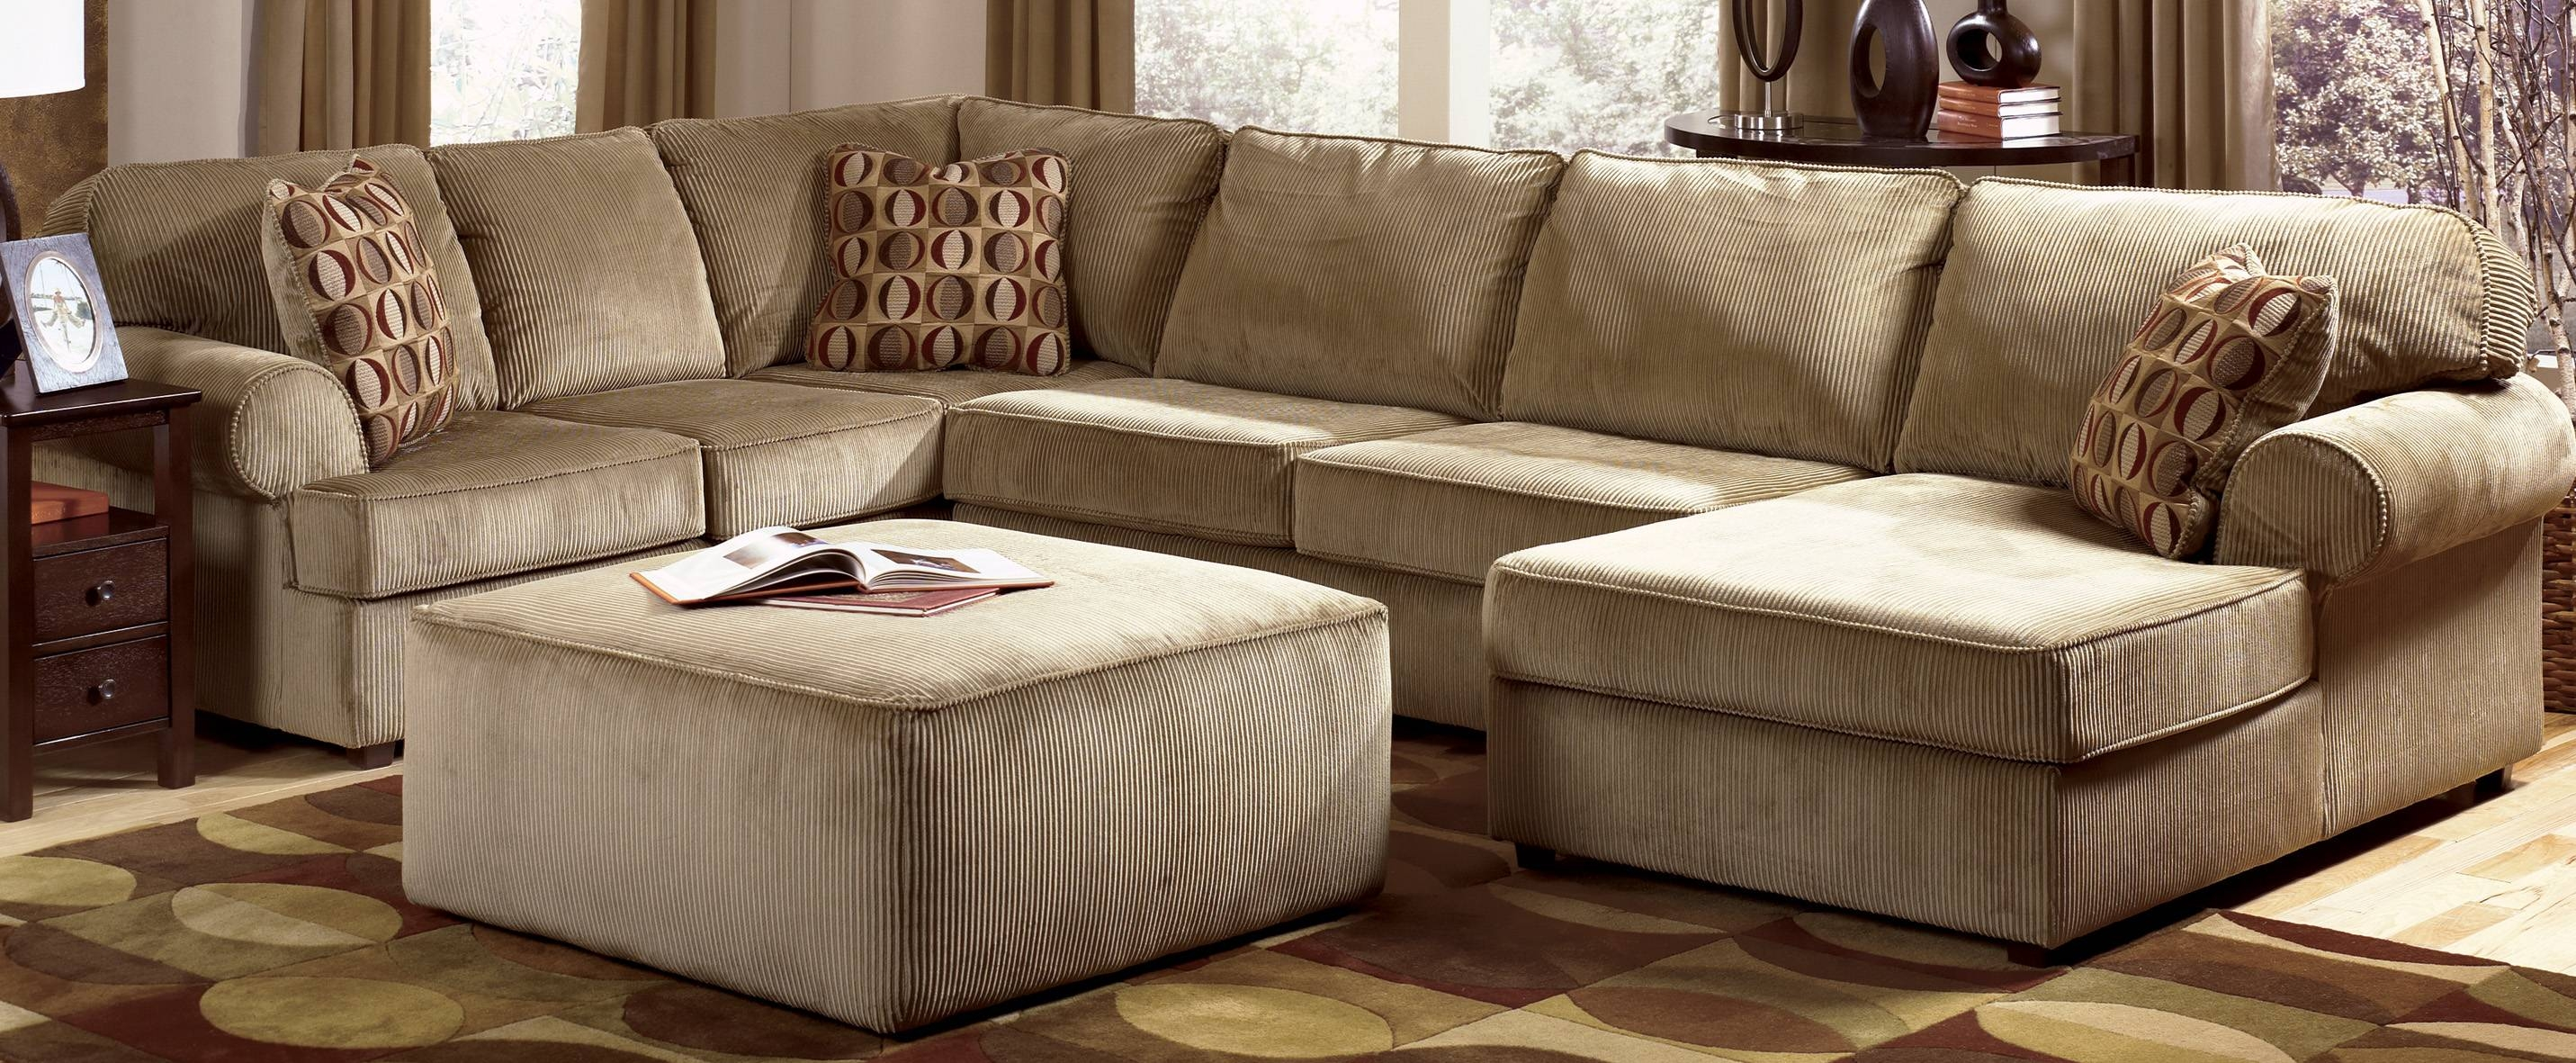 Cheap Home Theater Seating Canada. Rockers Recliners U0026 Swivels in Expensive Sectional Sofas (Image 6 of 30)